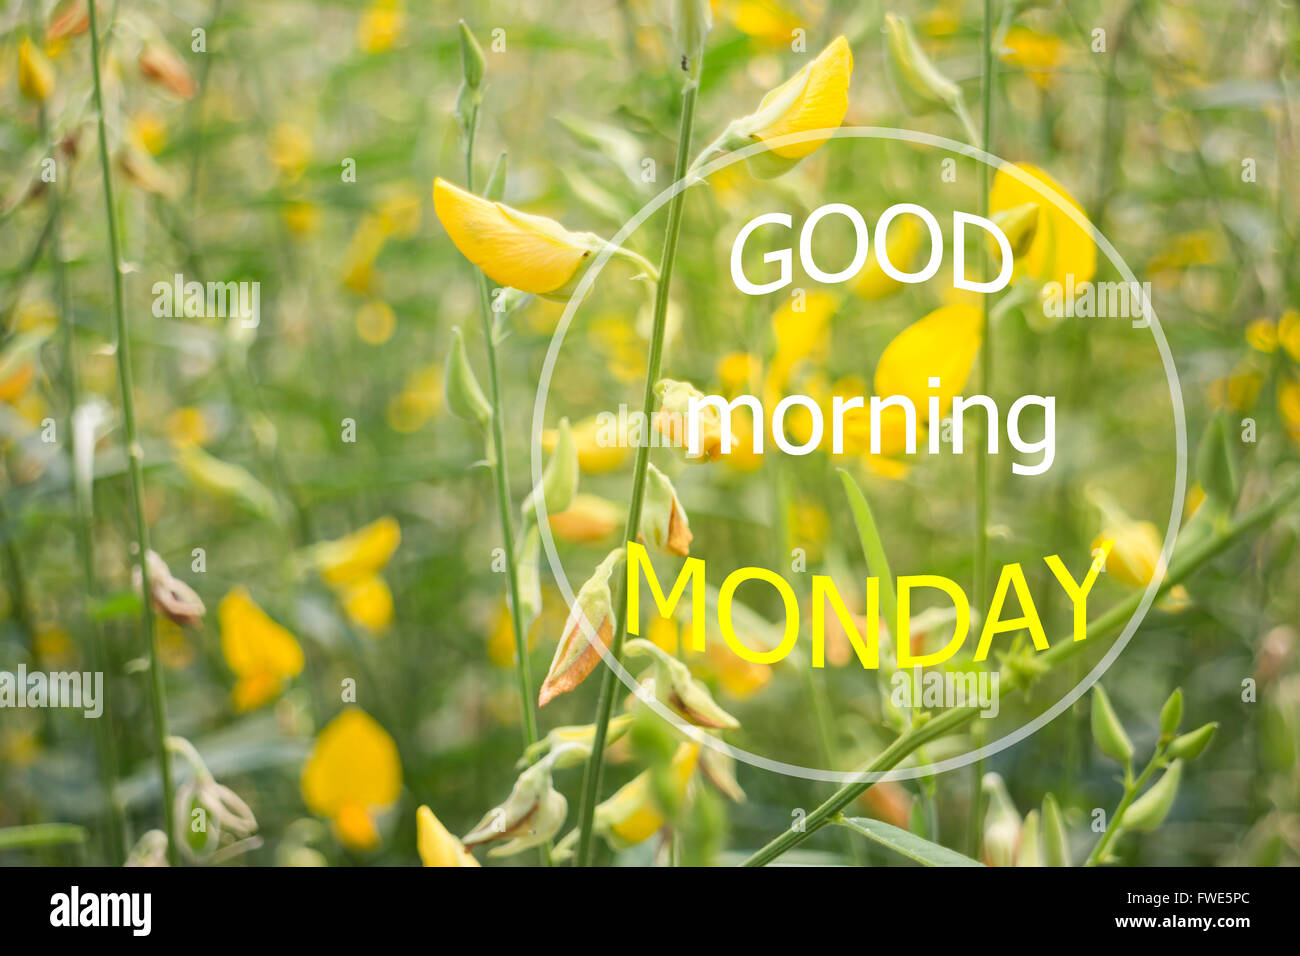 Good Morning Monday Quotes Good Morning Monday Quote Design Poster Stock Photo Stock Photo